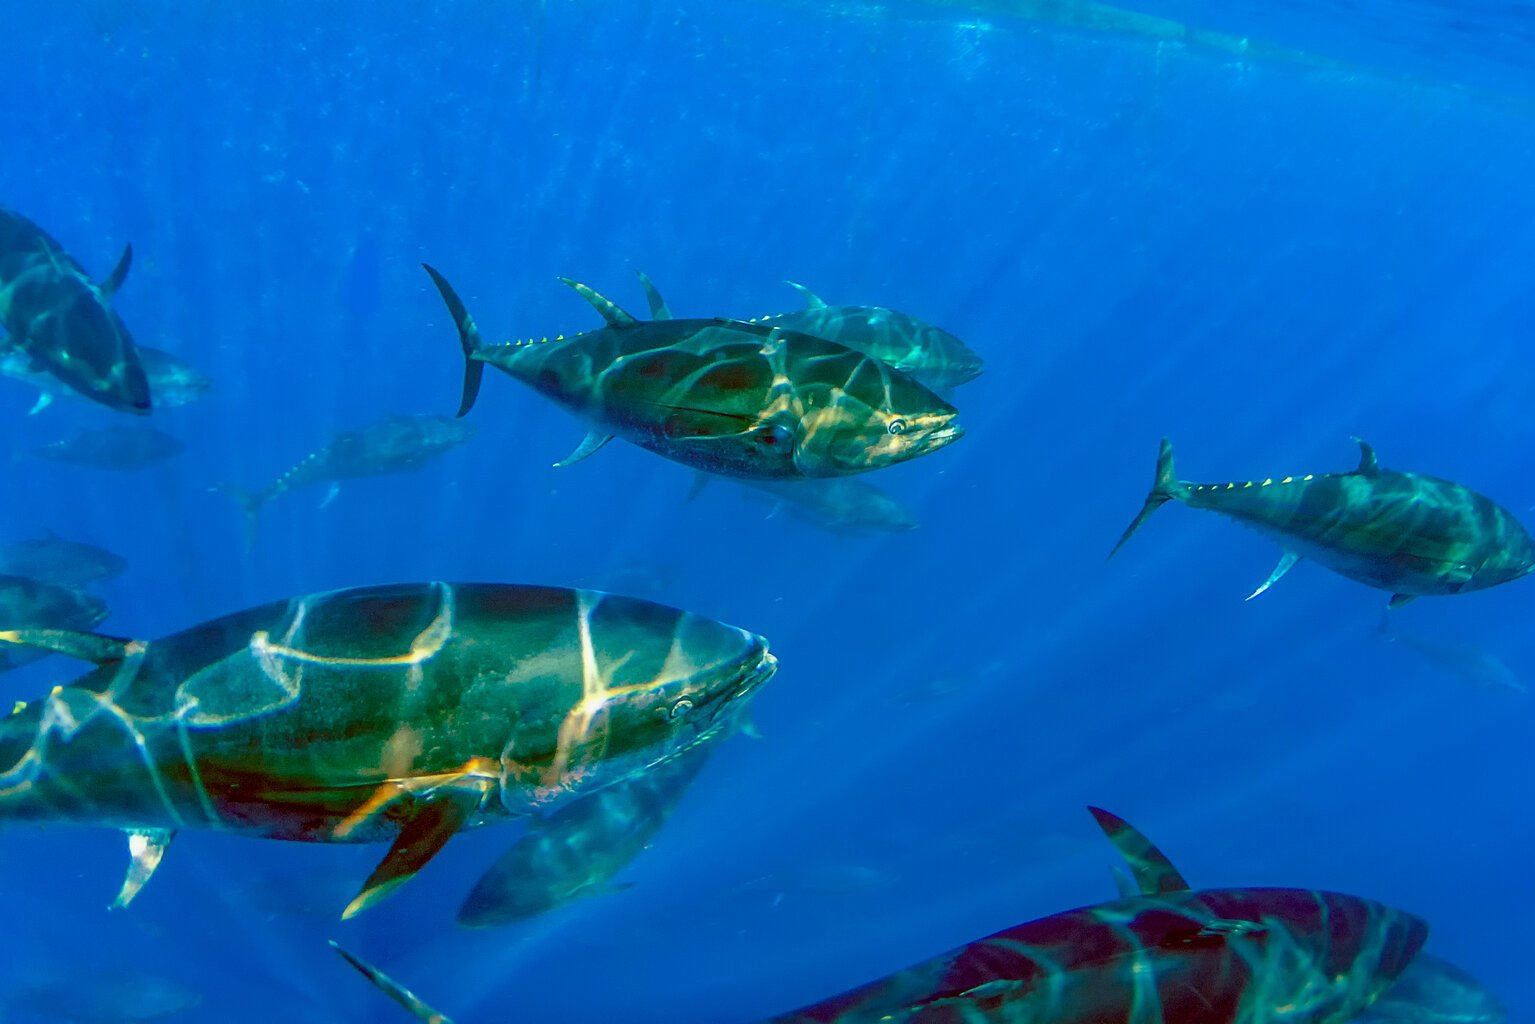 Several Atlantic Bluefin Tunas swimming in the open water